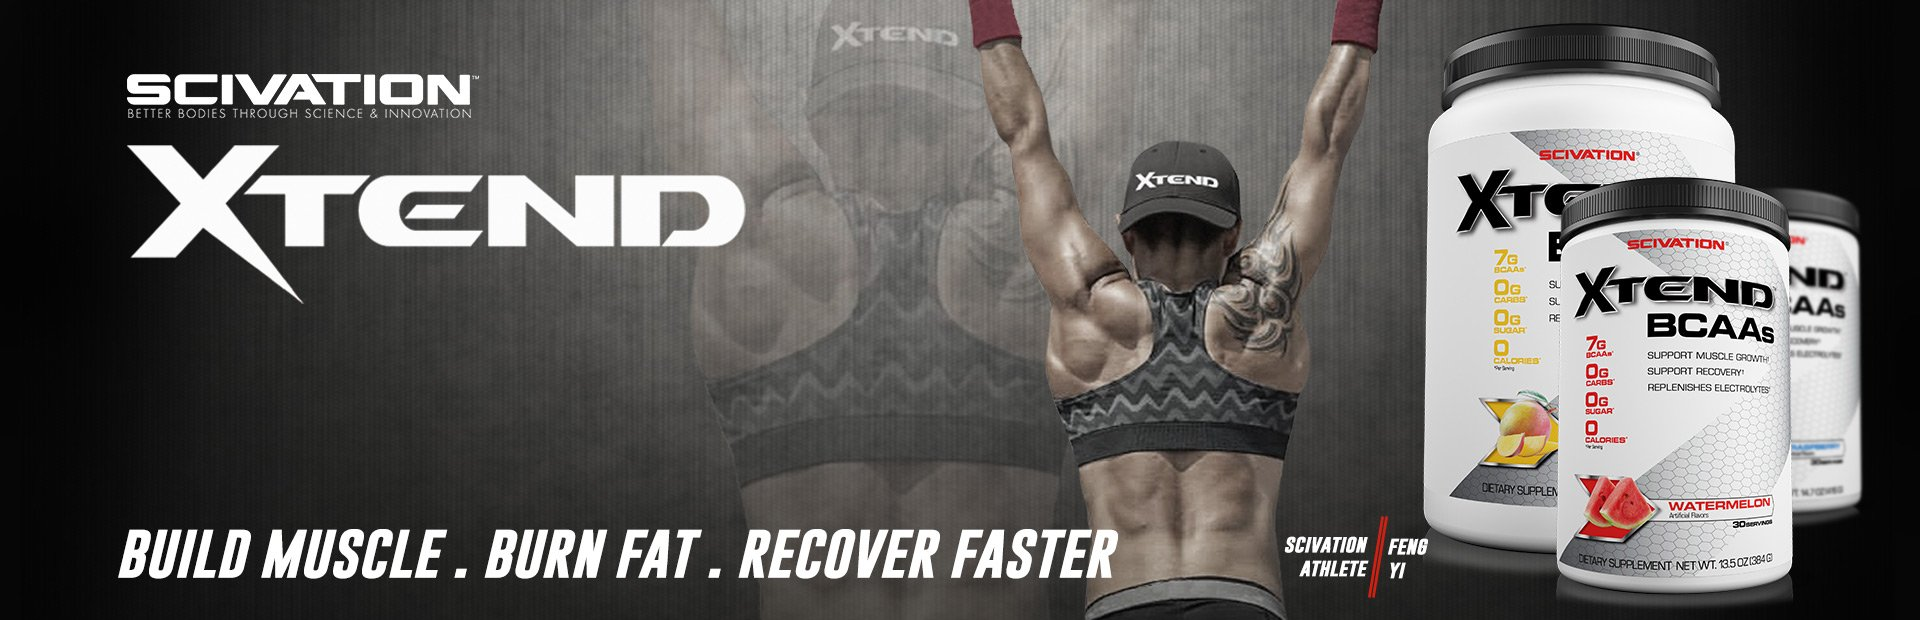 XTEND WHEN YOU NEED BEST BCAA